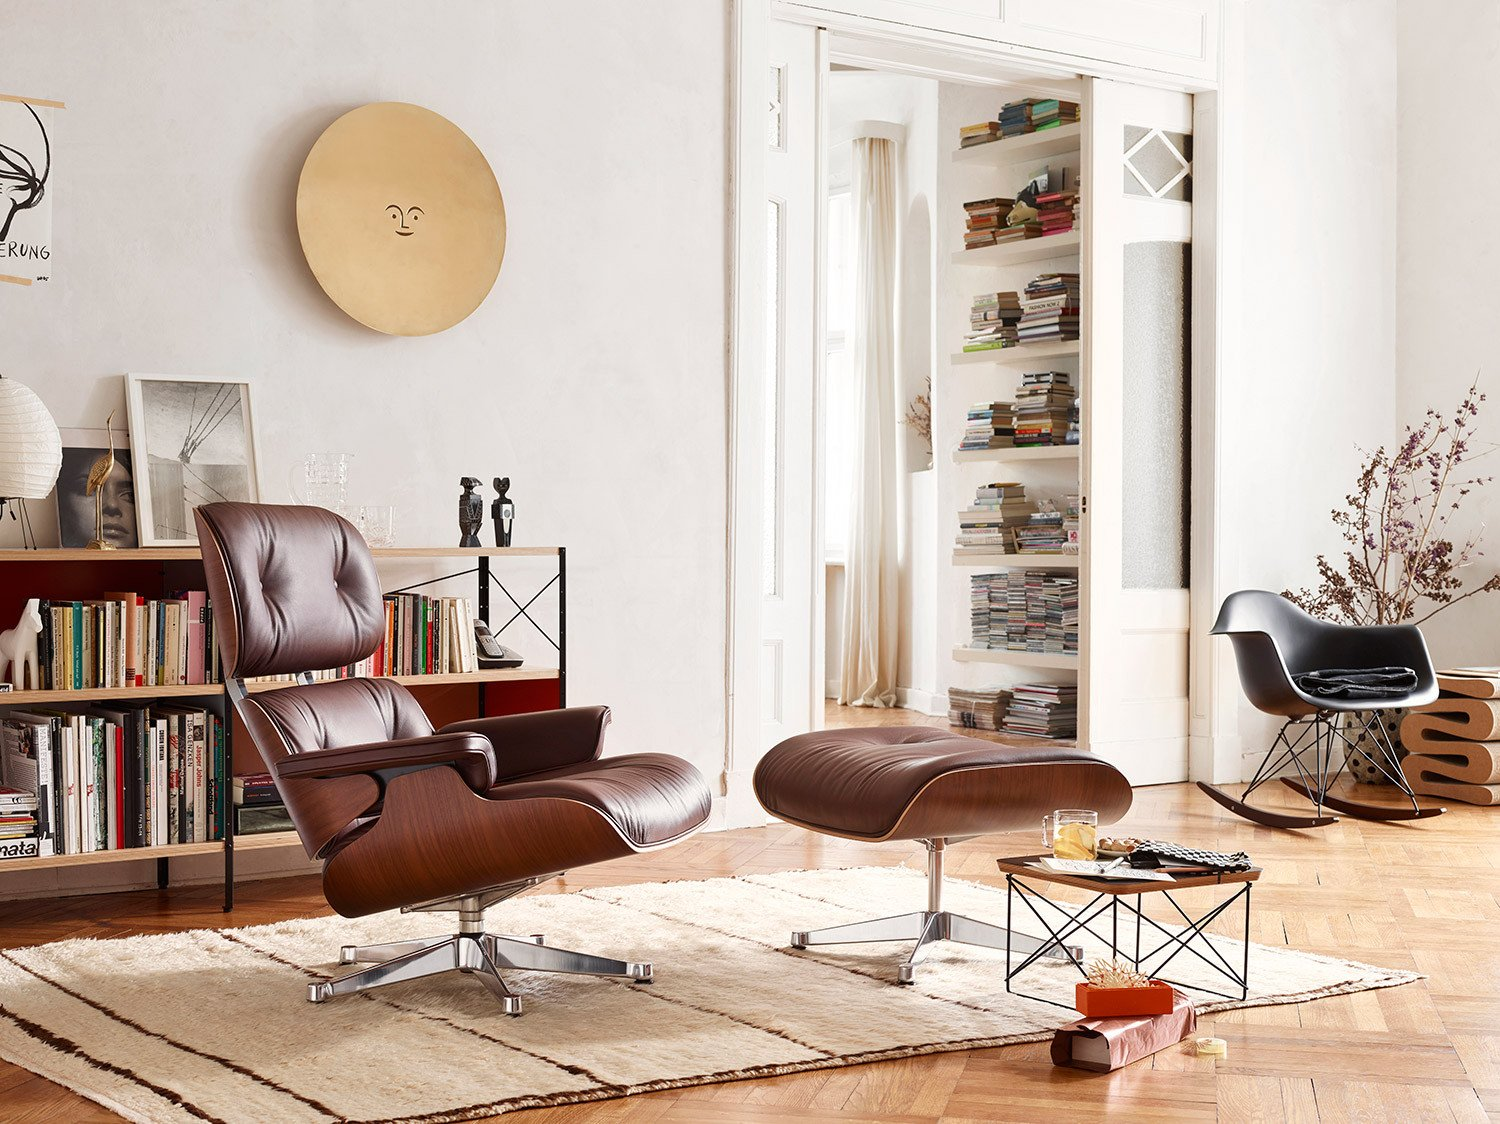 Vitra Lounge Chair Replica why are the eames lounge chairs so darn expensive?